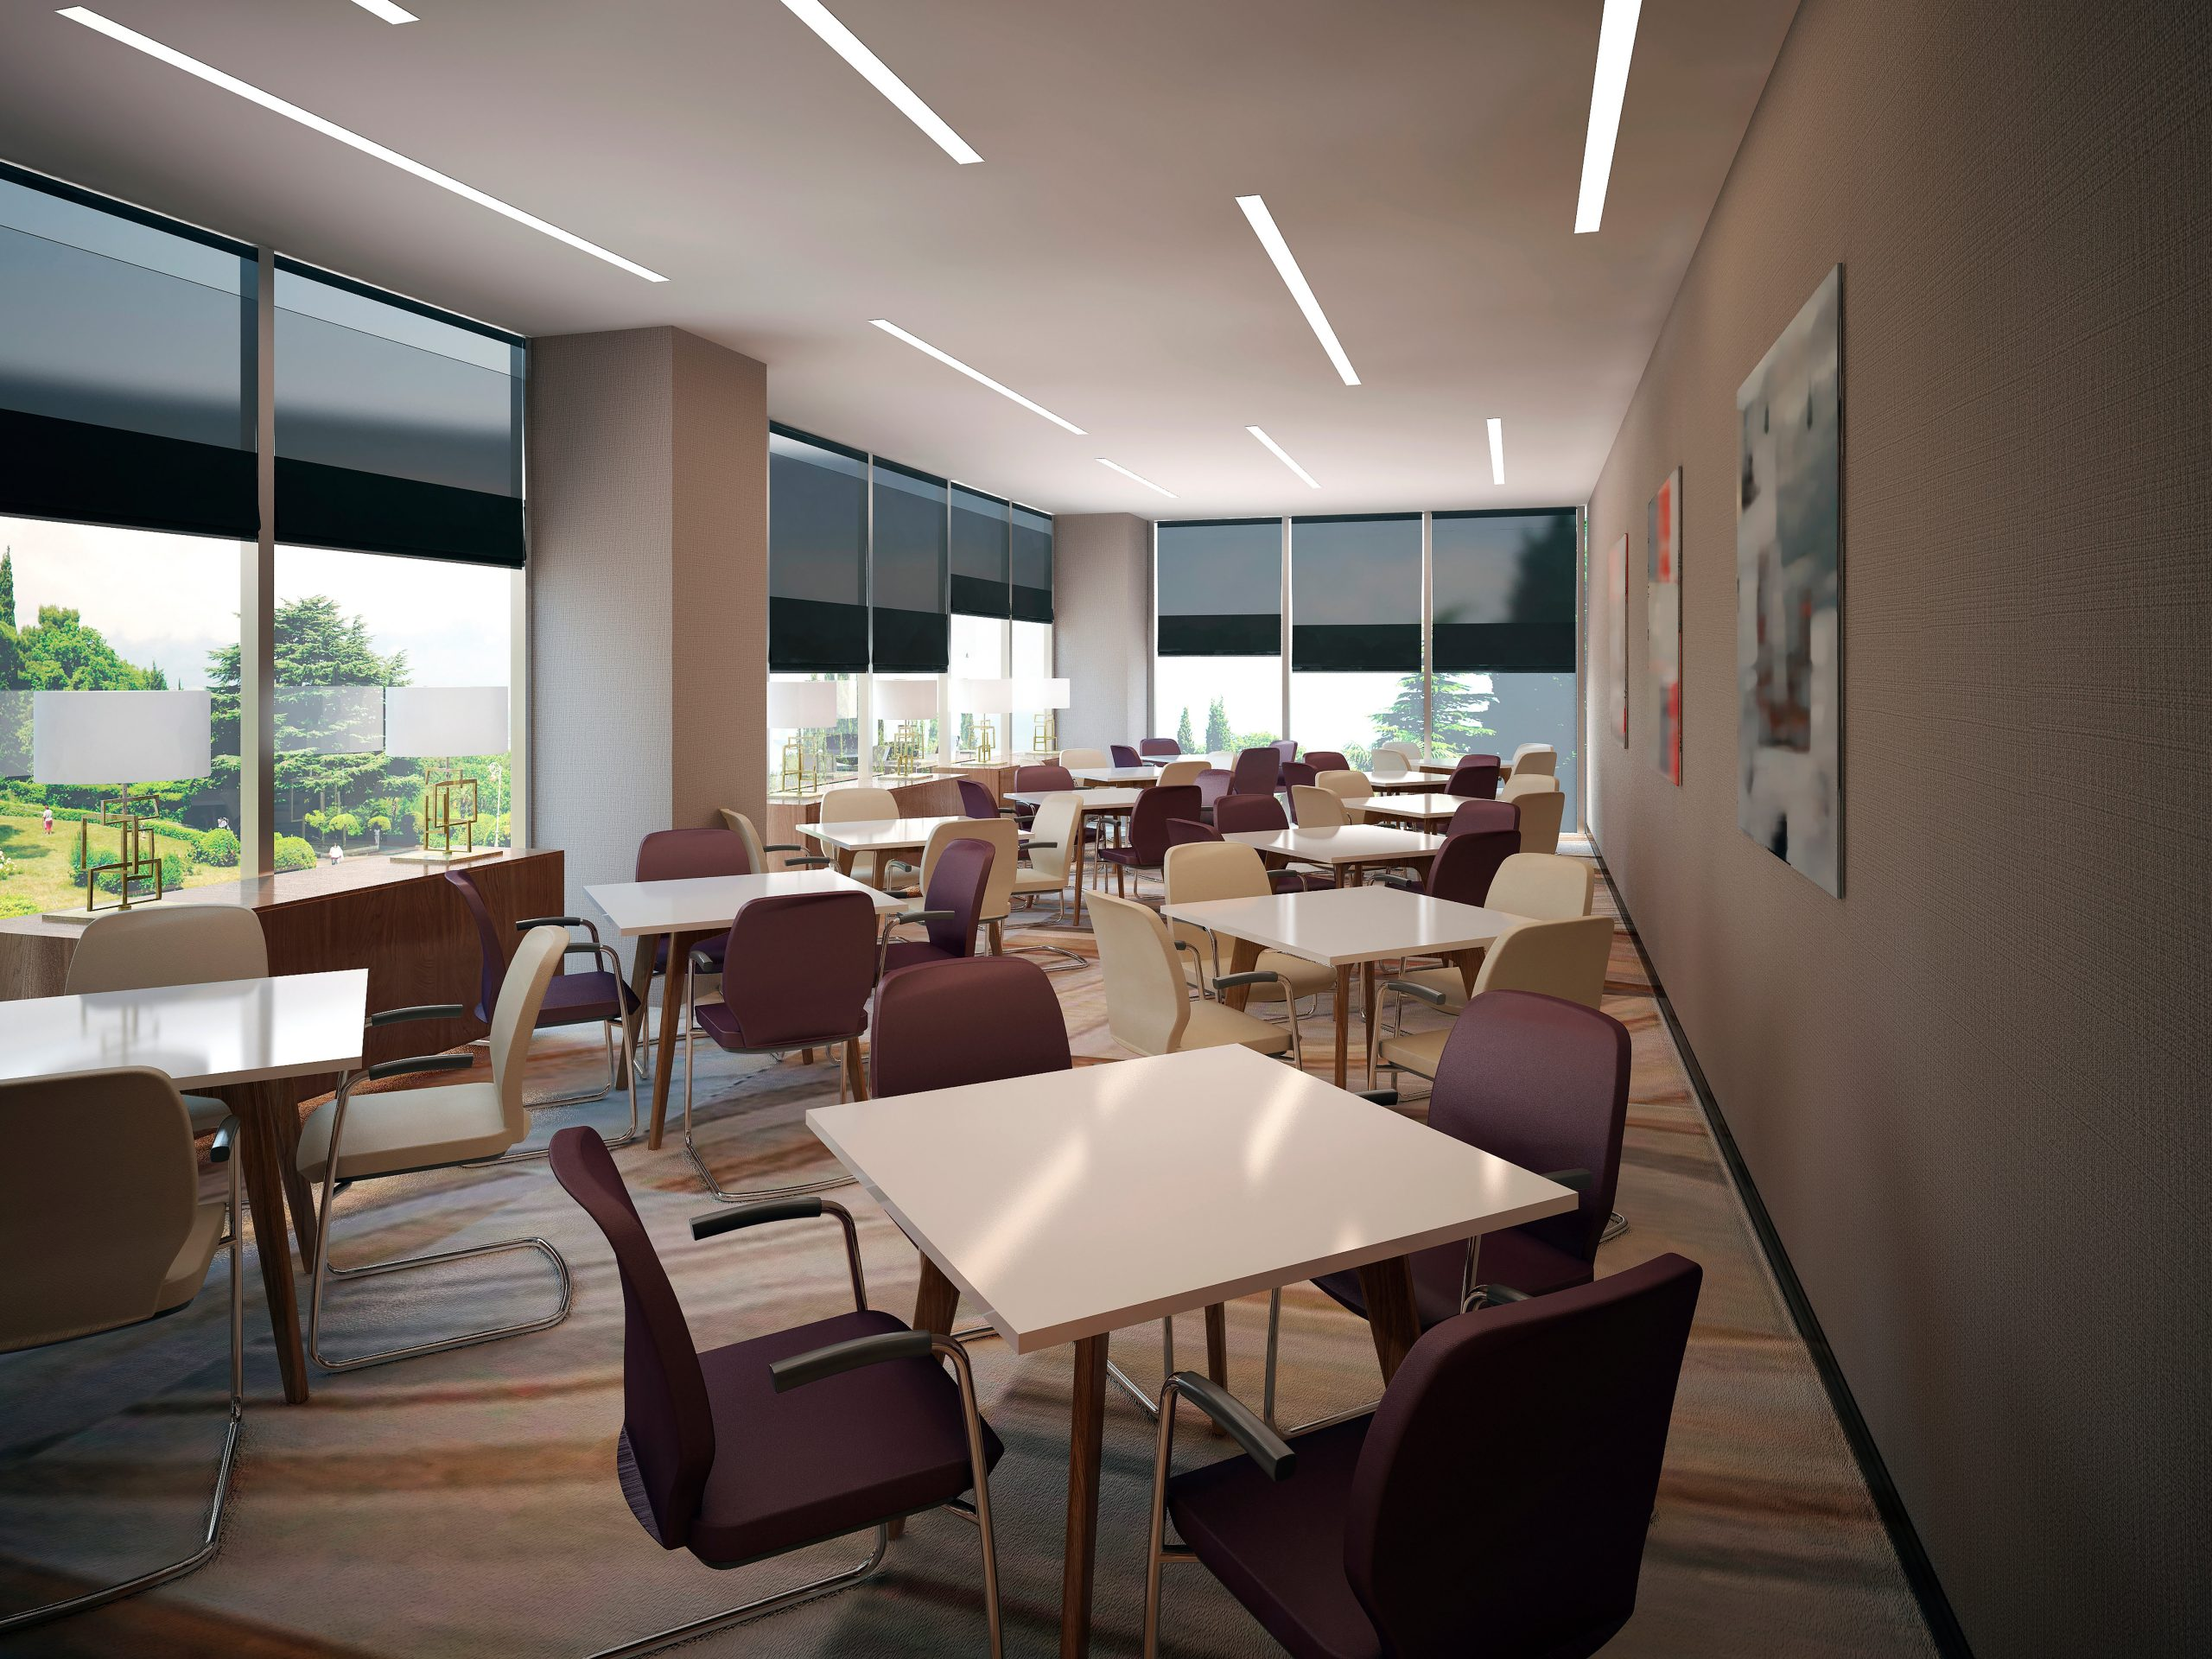 interior meeting room, 3d images